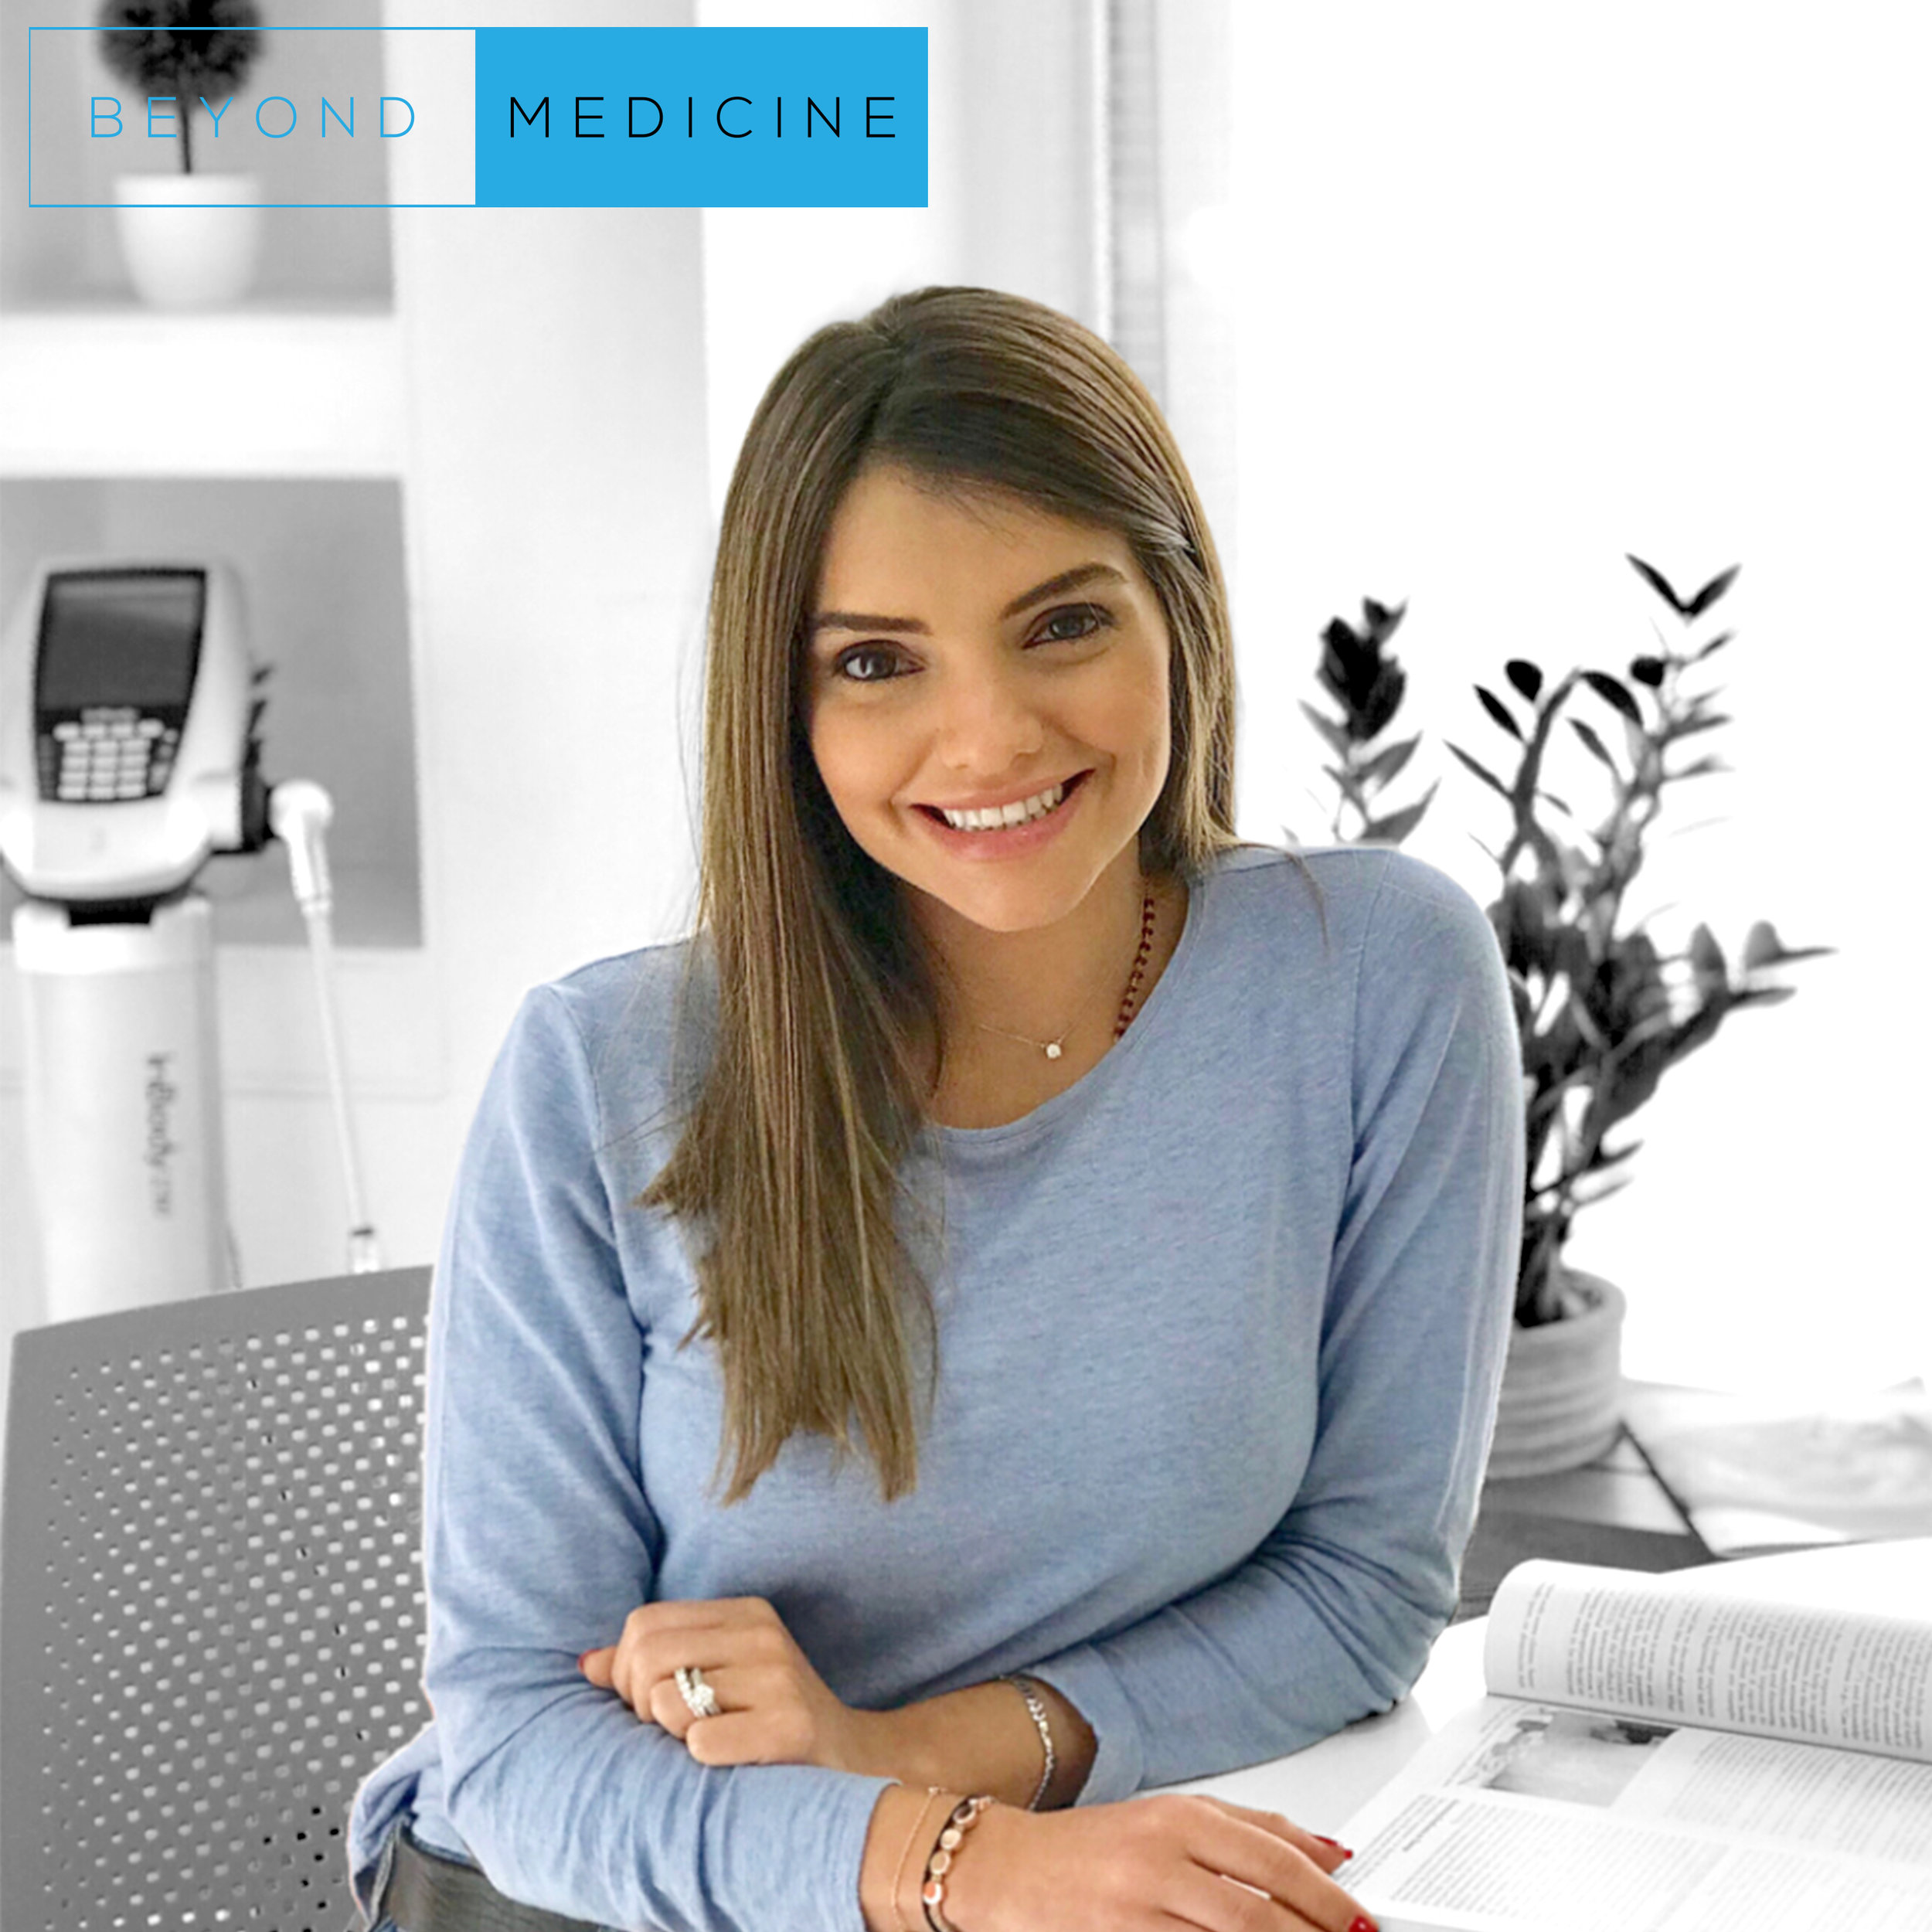 Food Lifestyle - Baraa El Sabbagh is a Registered Dietician, Personal Trainer and Certified Sports Nutritionist. She is also the Co-Founder of Healhty Happy Us. In this episode Baraa helps us look at things a little differently when it comes to a healthy lifestyle.